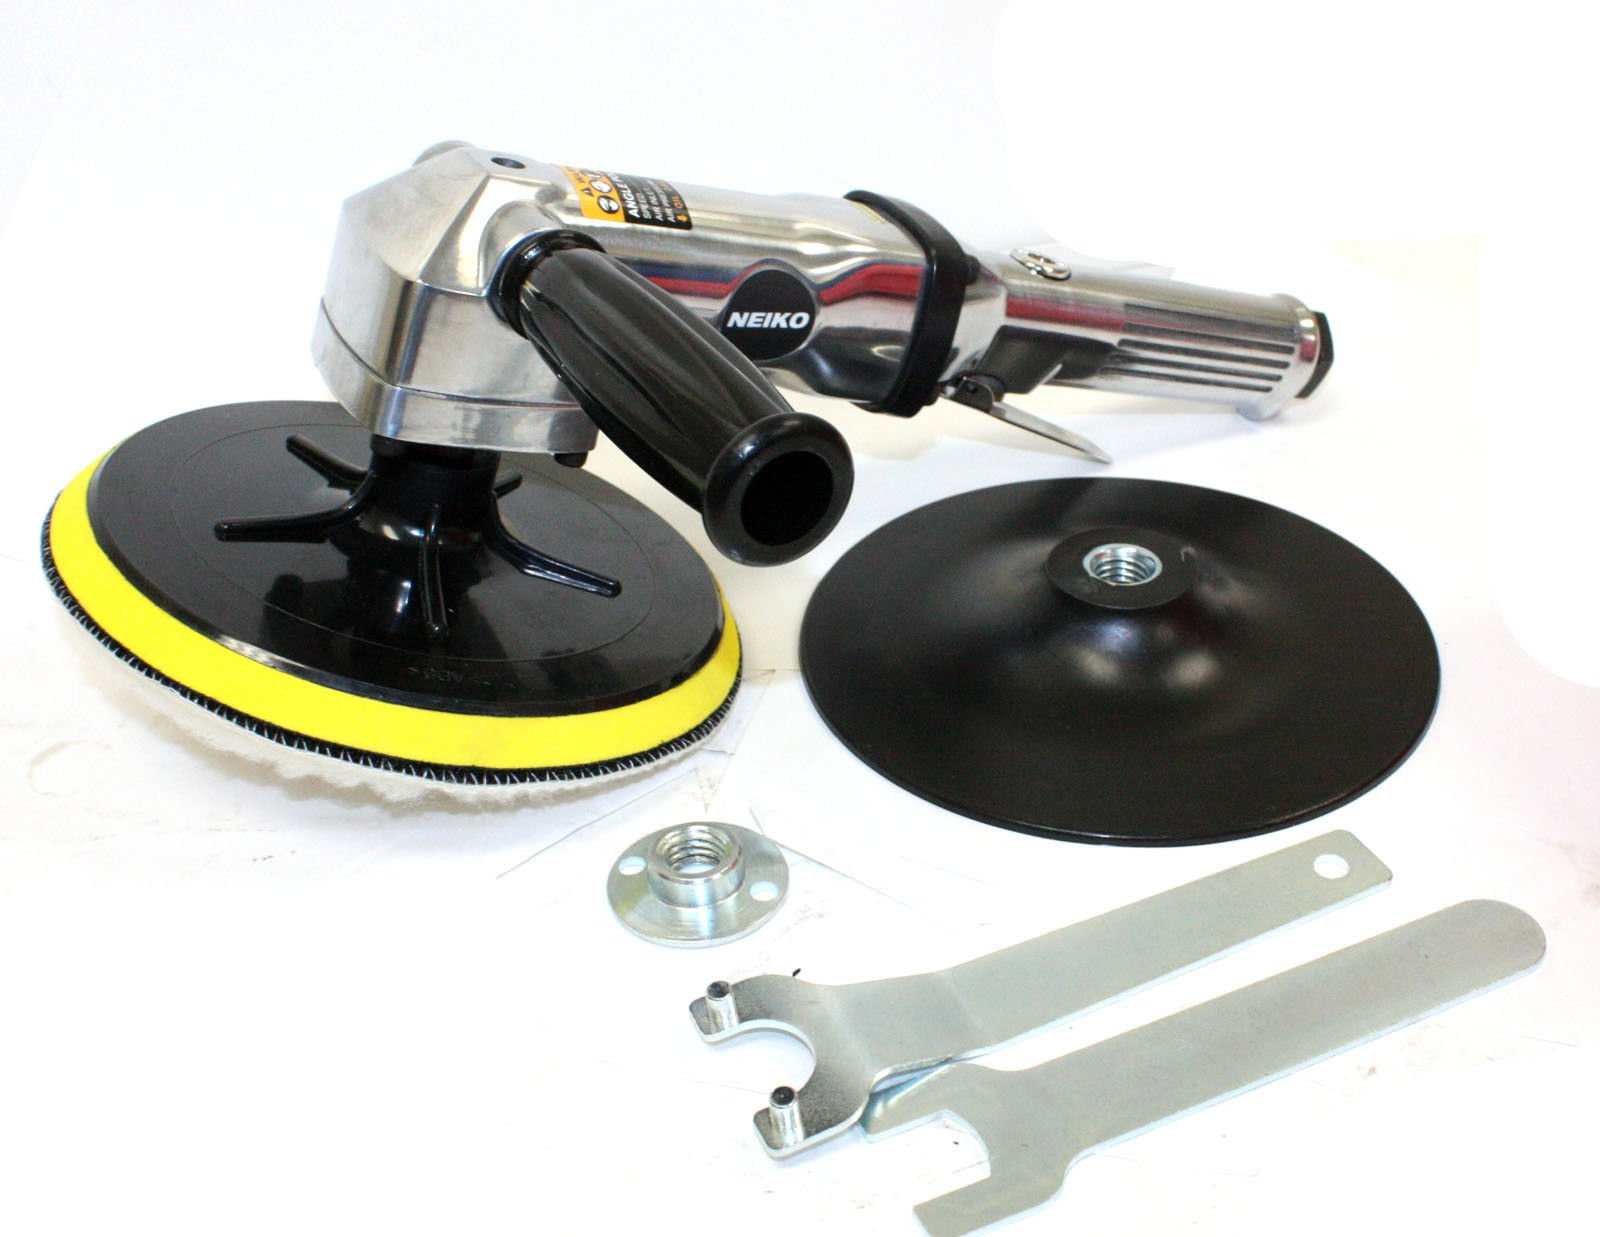 M2 Outlet 7'' Stainless Pneumatic Variable Speed 1,500-2,600 RPM Air Angle Polisher Buffer